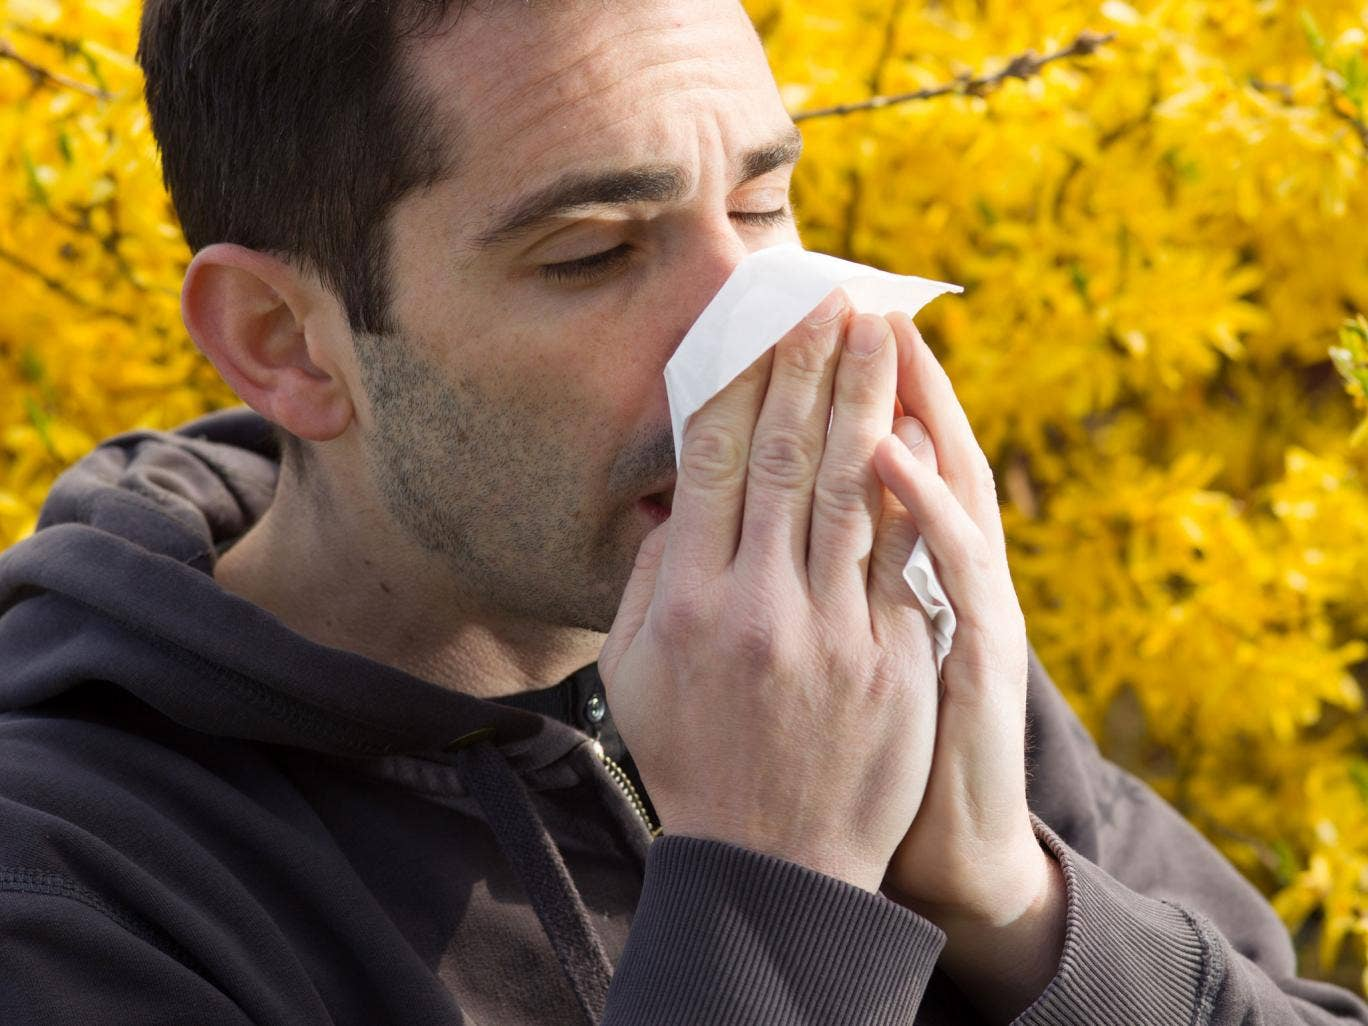 The UK is on alert for severe hay fever outbreaks with pollen levels rising due to a late Spring